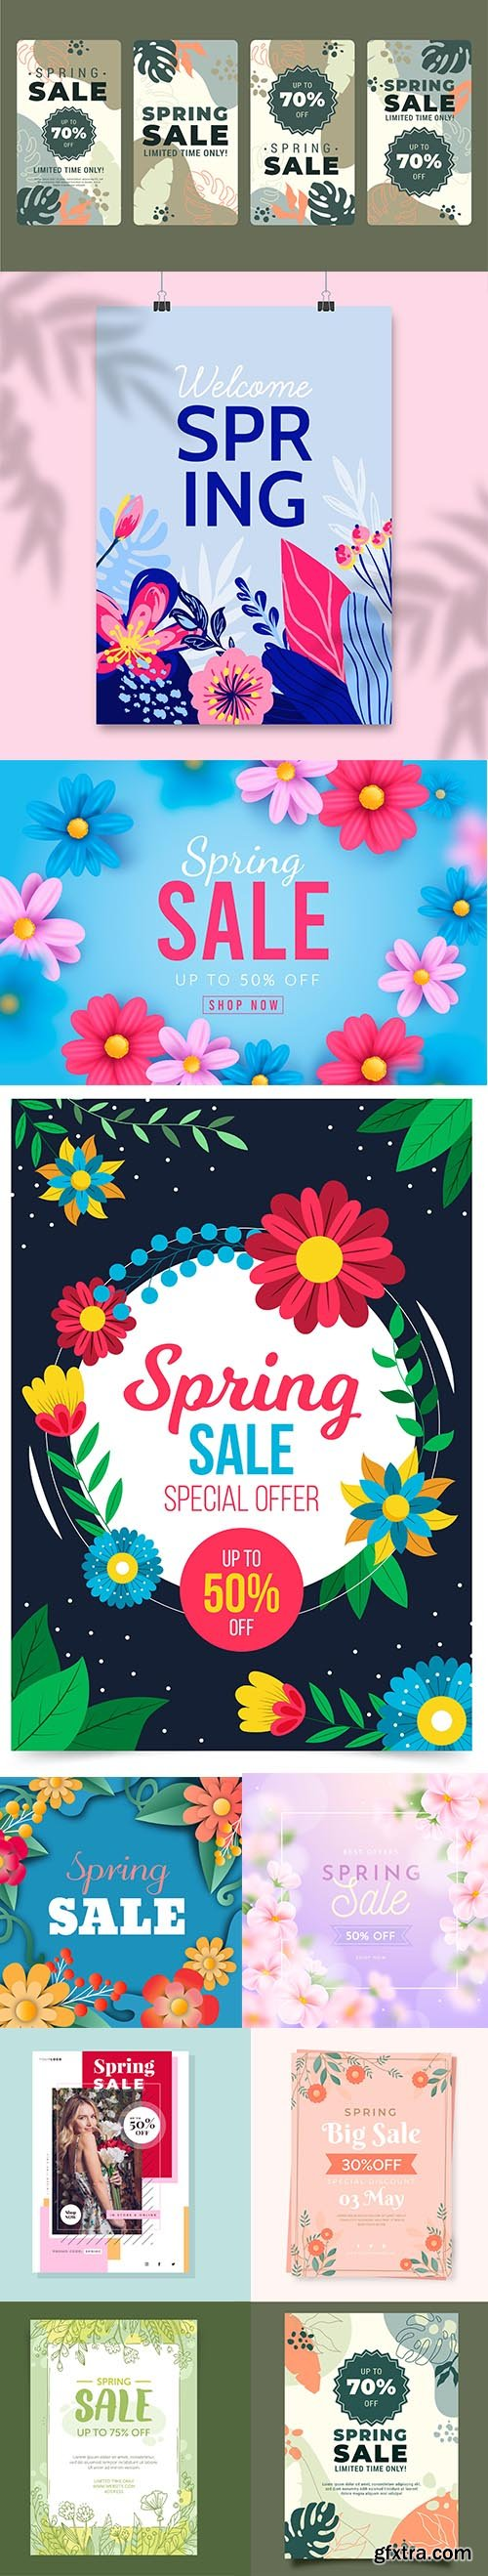 Hand-drawn Spring Sale Vector Collection